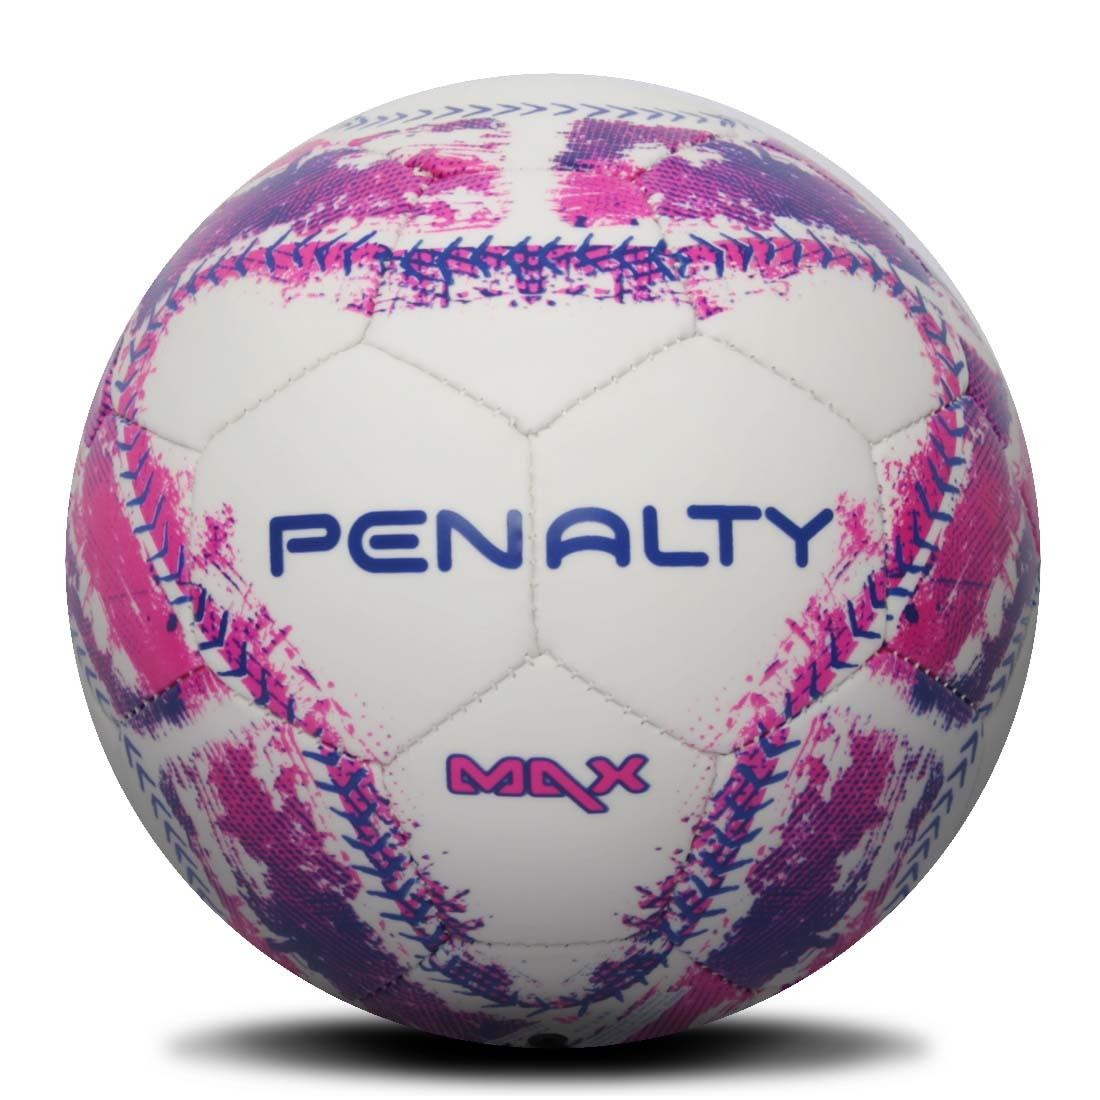 253039989bac6 mini bola penalty max ix. Carregando zoom.